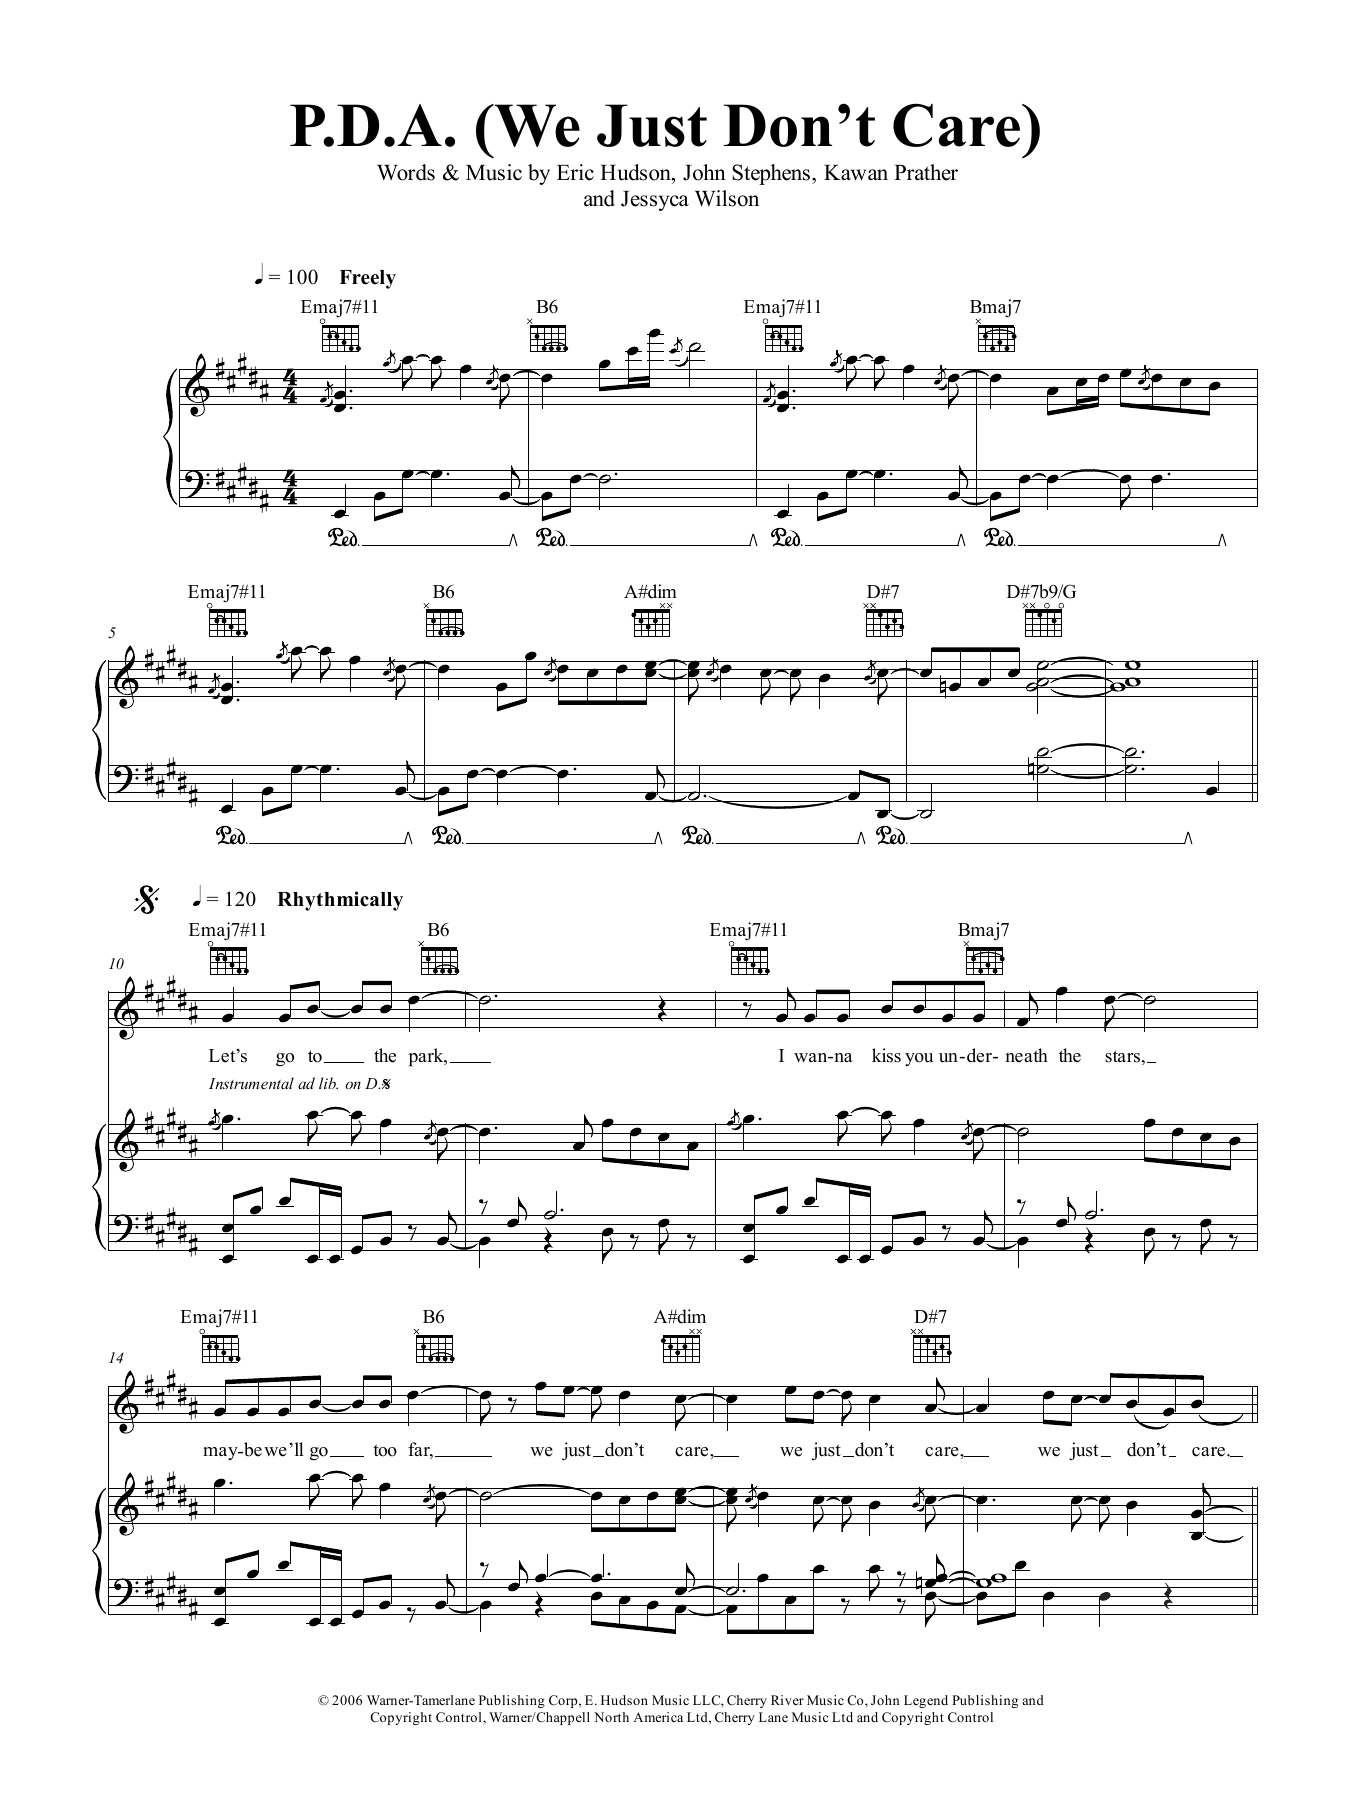 PDA (We Just Don't Care) Sheet Music